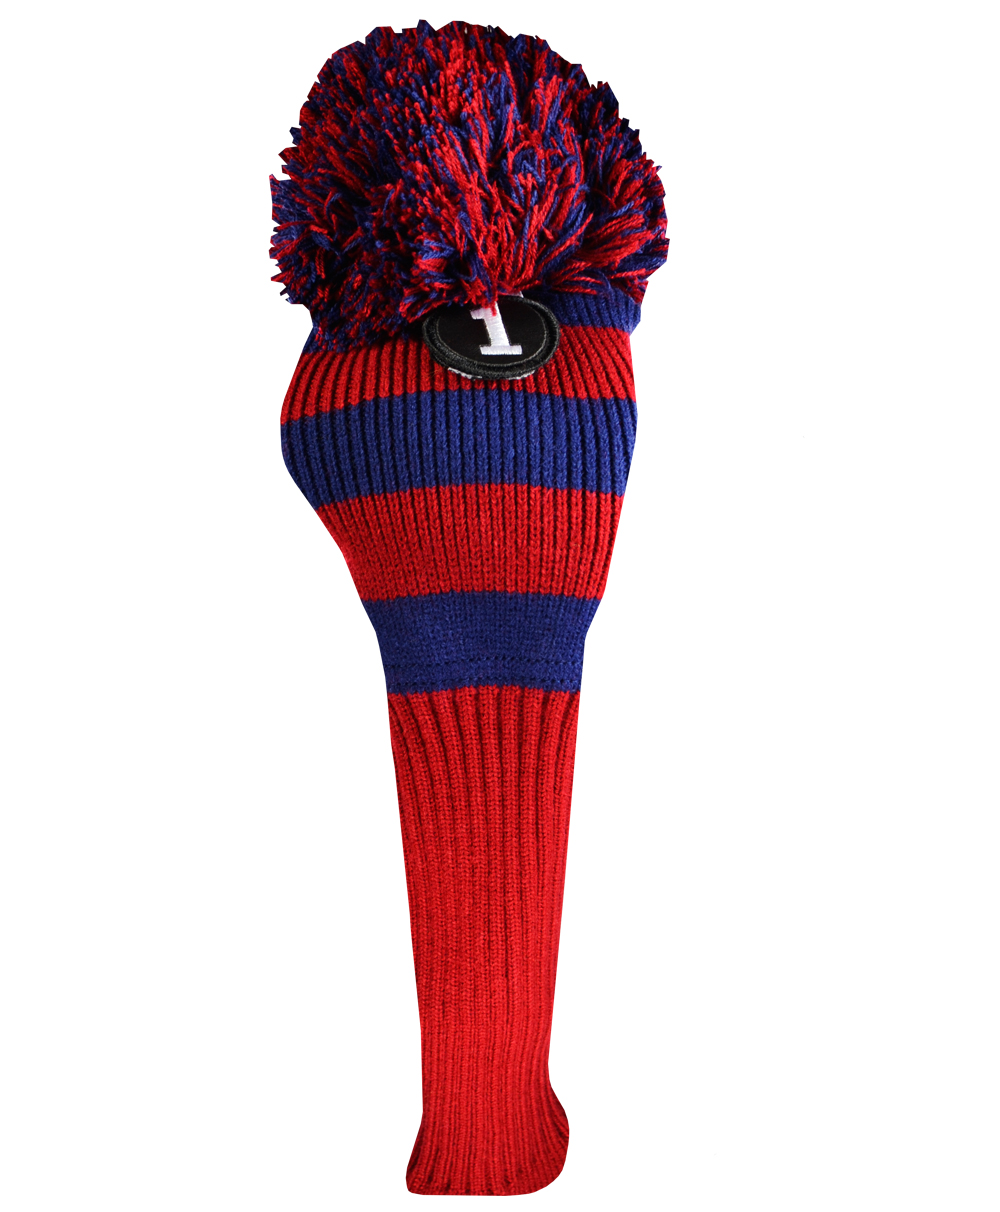 Ray Cook Pom Pom Knit Driver Head Cover by Ray Cook Golf - Golf Club Head Covers